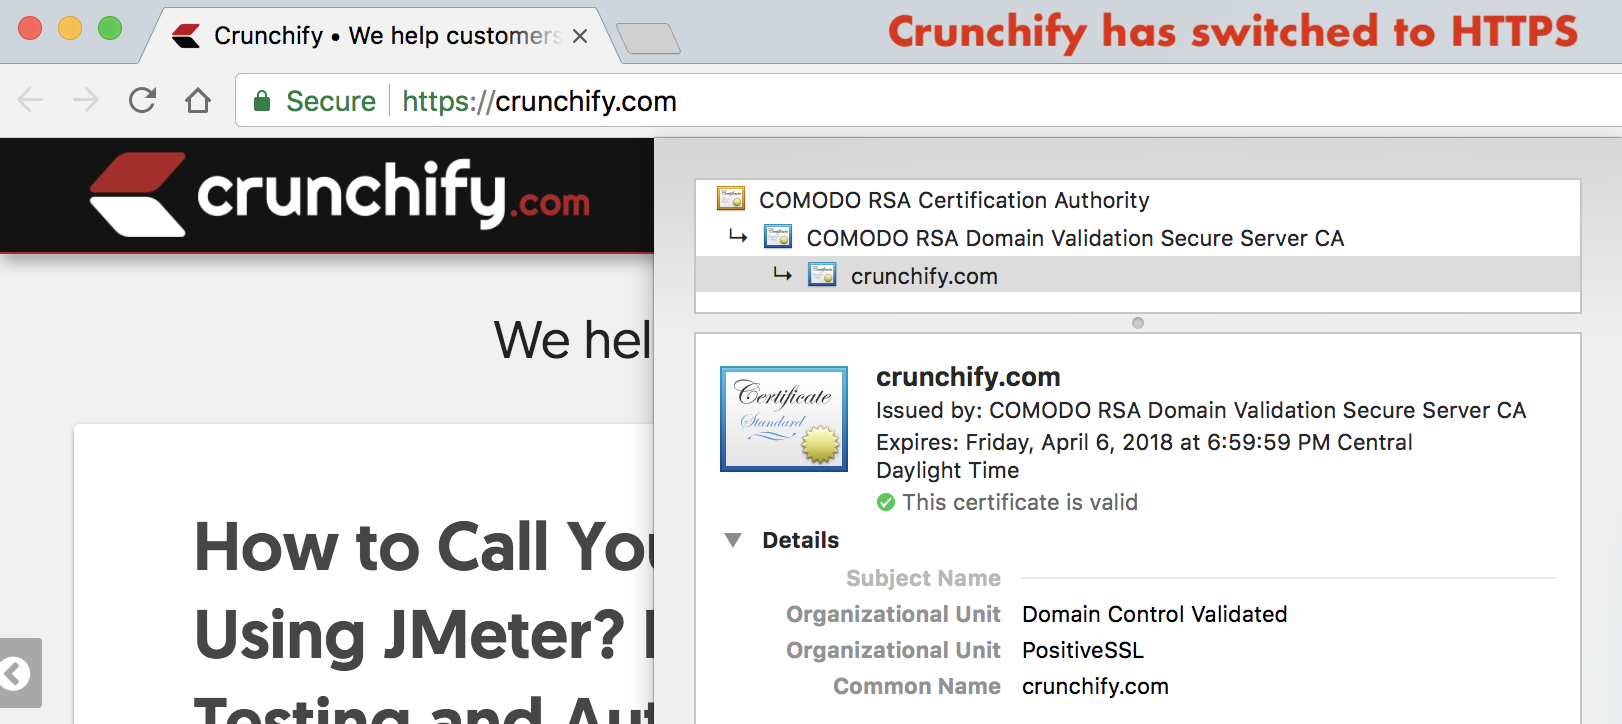 Crunchify.com has switched to HTTPS